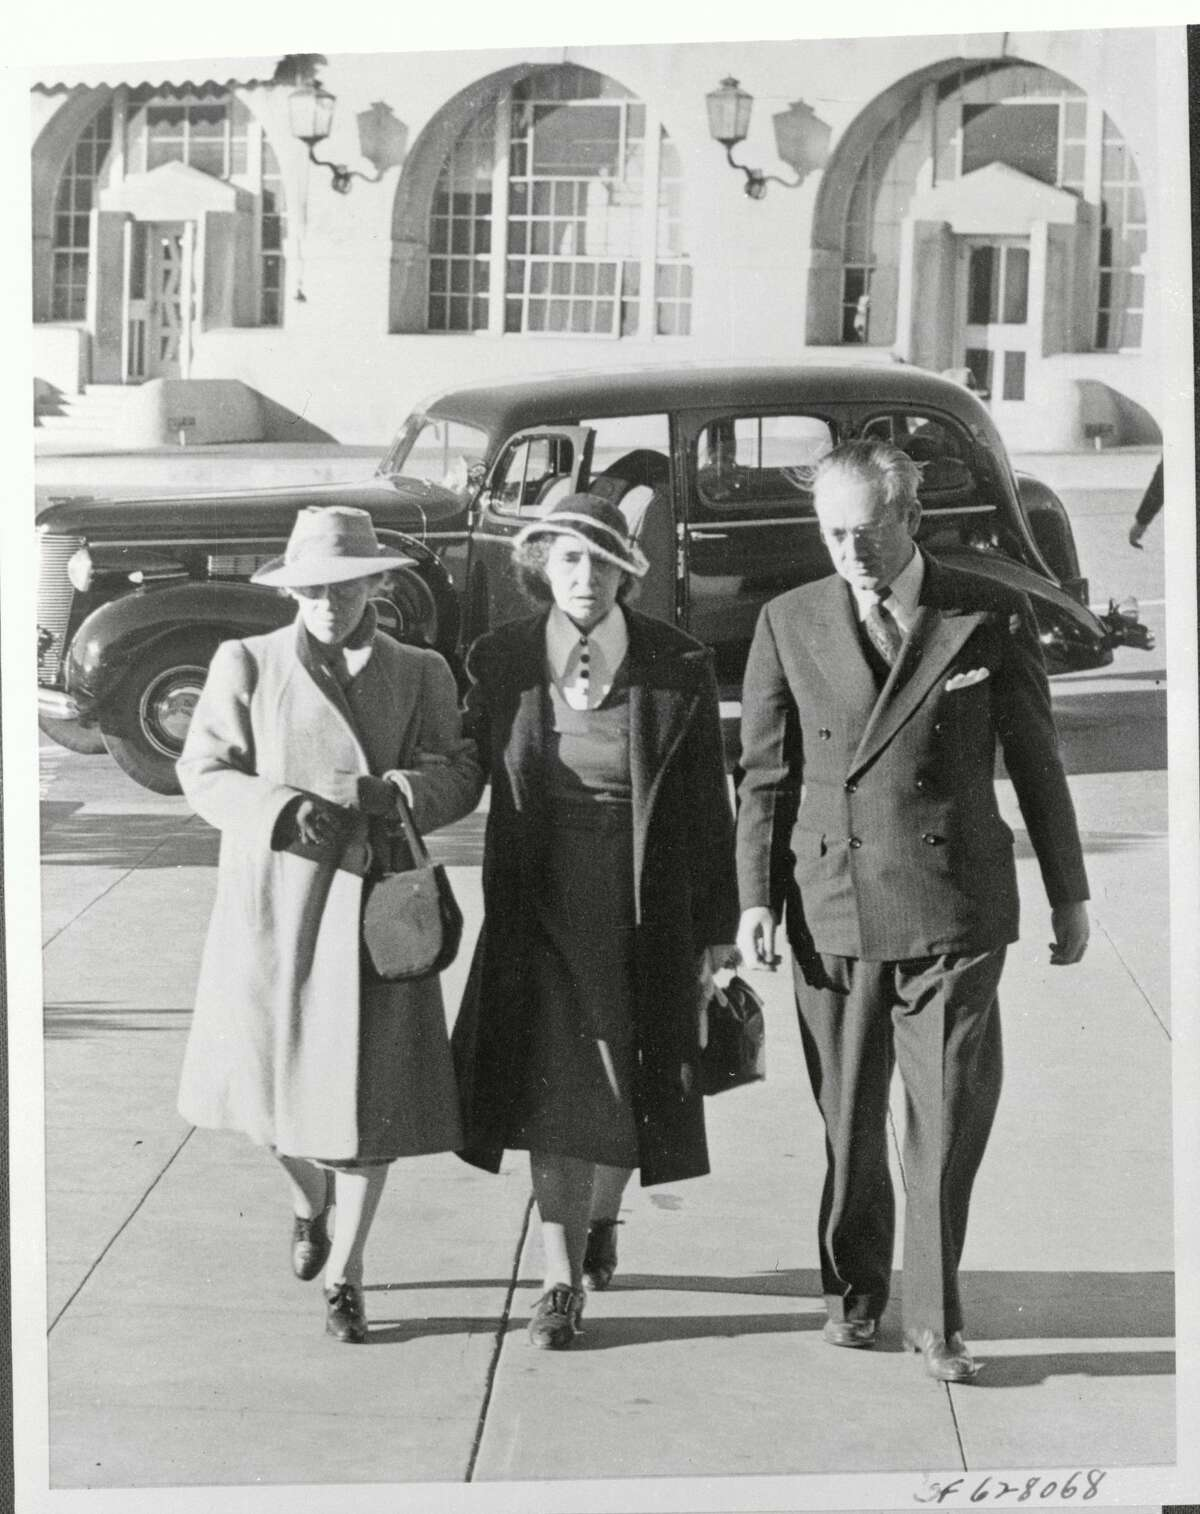 Saved from death three times by gubernatorial reprieves, Juanita Spinelli, center, walks into San Quentin prison before her execution, which took place on November 21, 1941. She was the first woman to die in San Quentin's lethal gas chamber. At her left in the picture is the matron, who accompanied her from Tehachapi Woman's Prison, (R), and Warden Clinton Duffy.